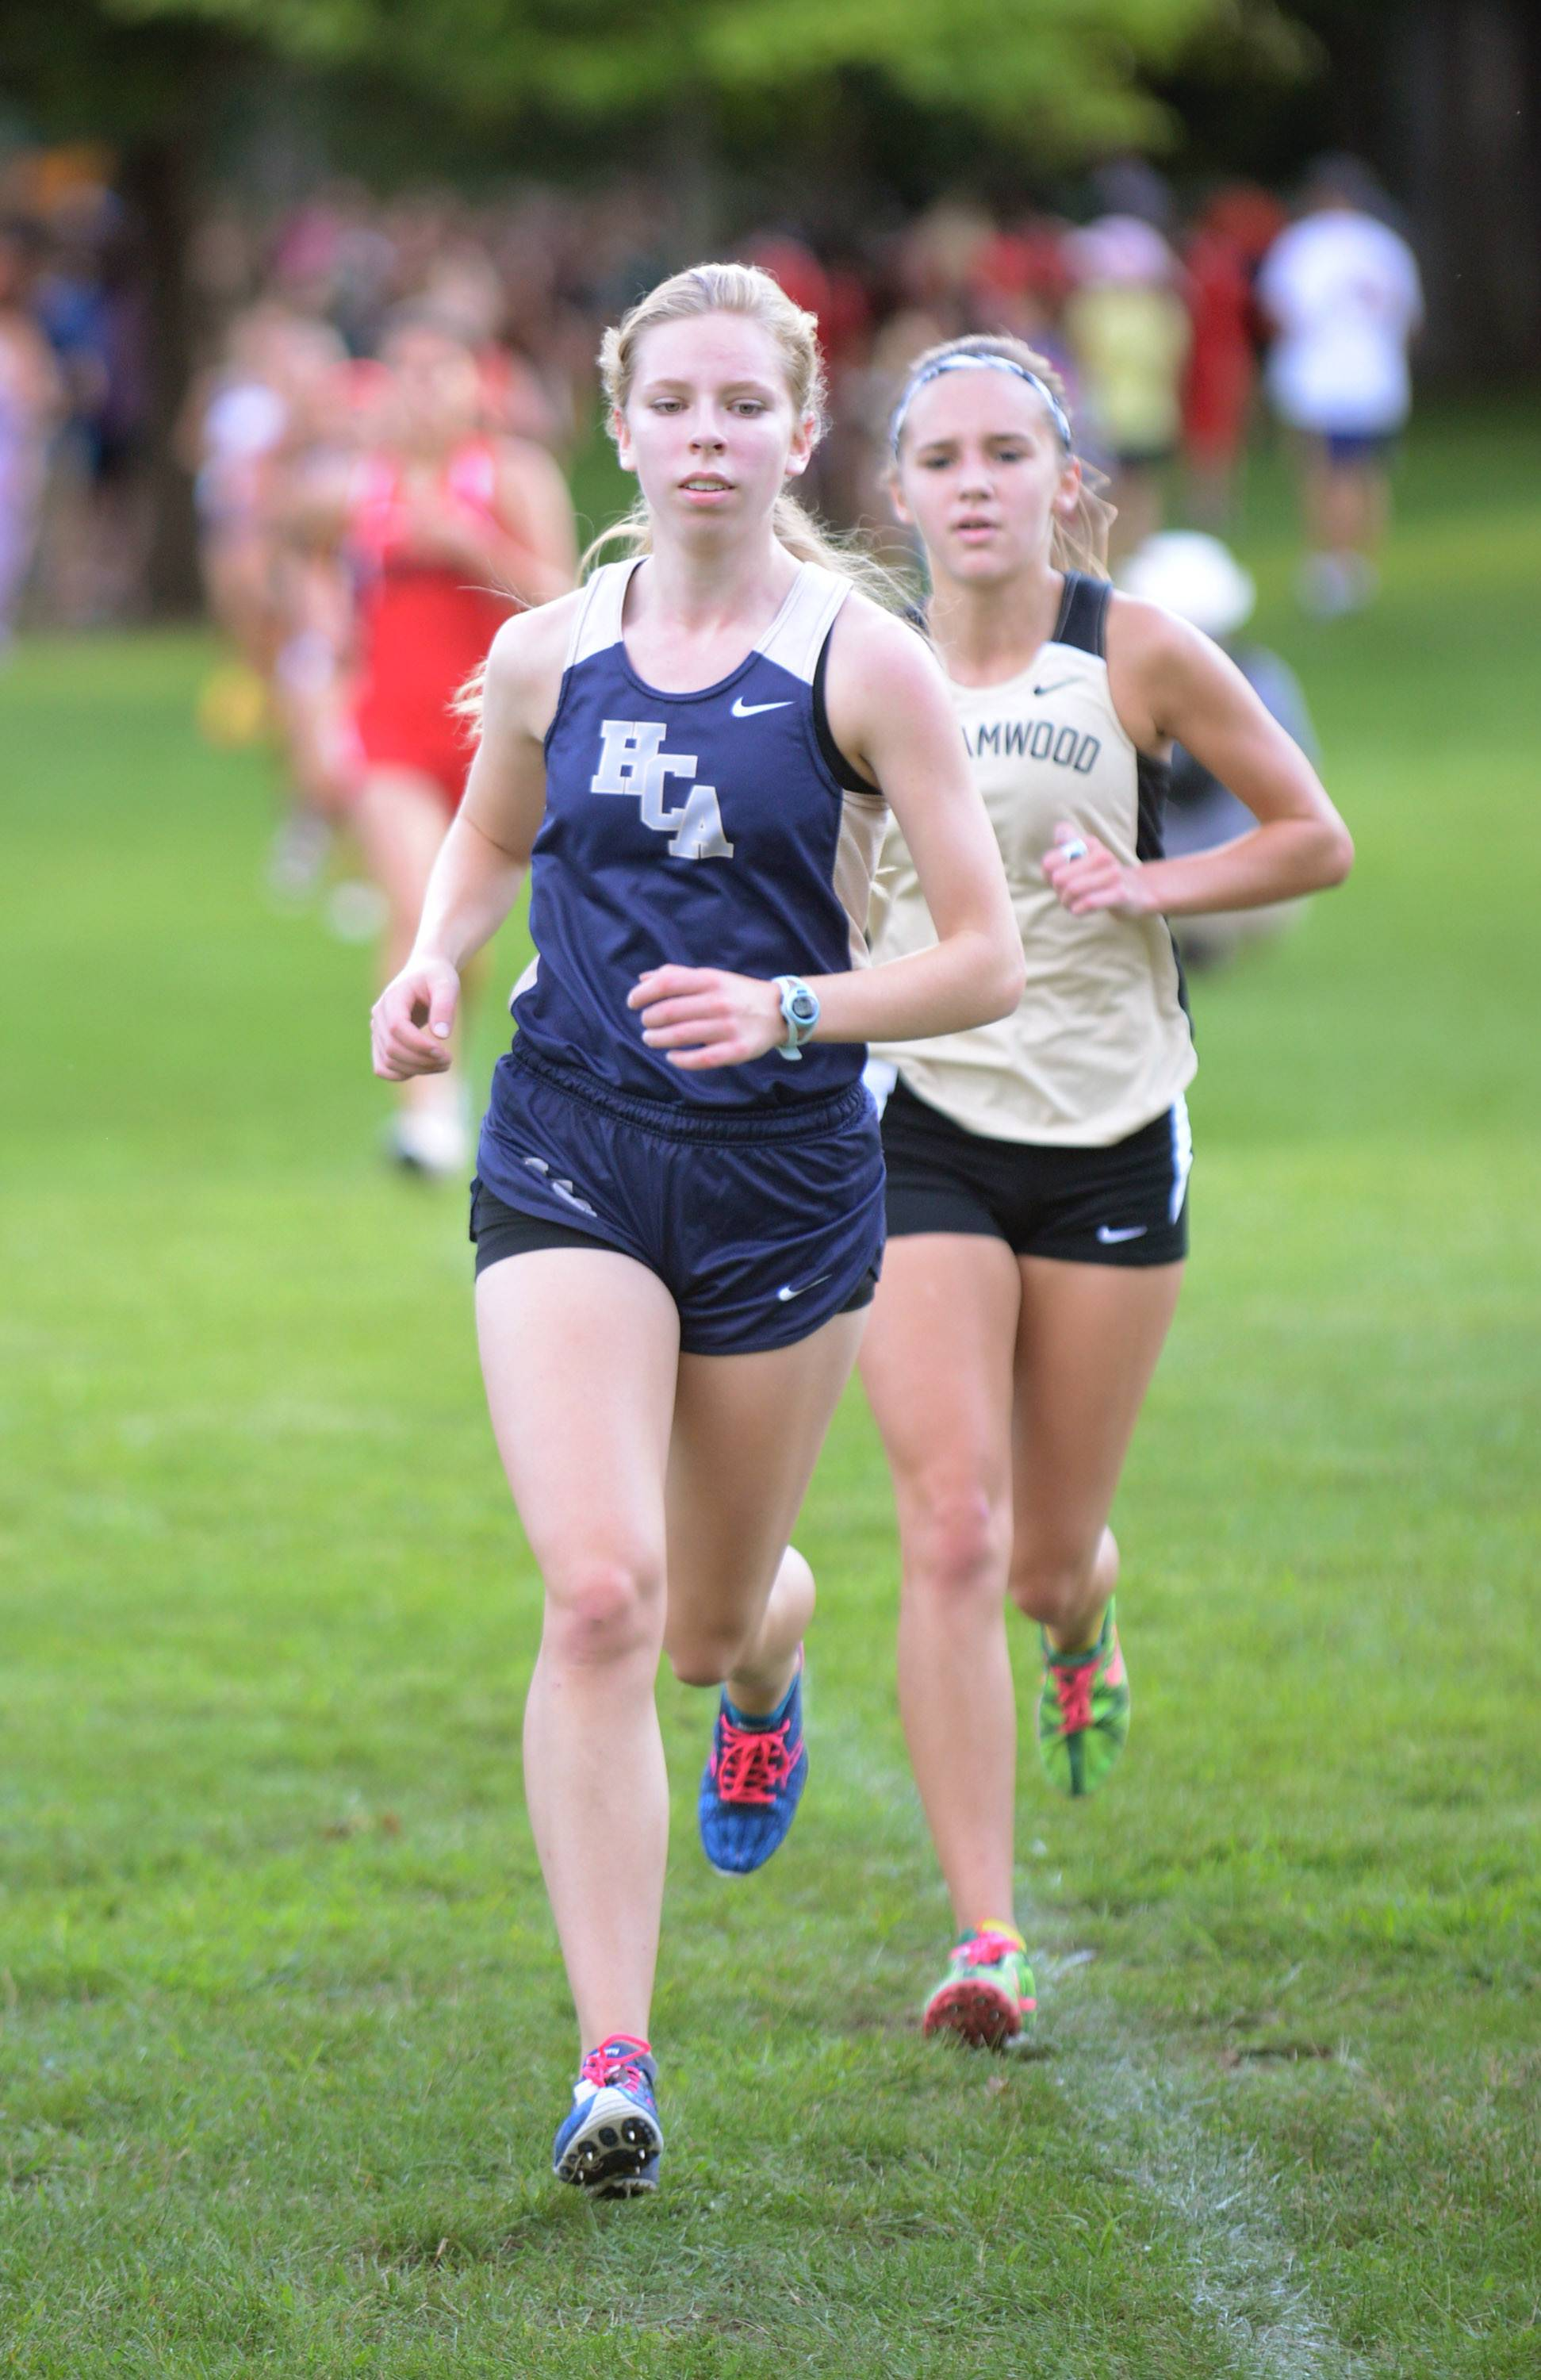 Harvest Christian Academy's Valerie Richter competes at the Elgin Invite cross country meet at Lords Park in Elgin on Tuesday.